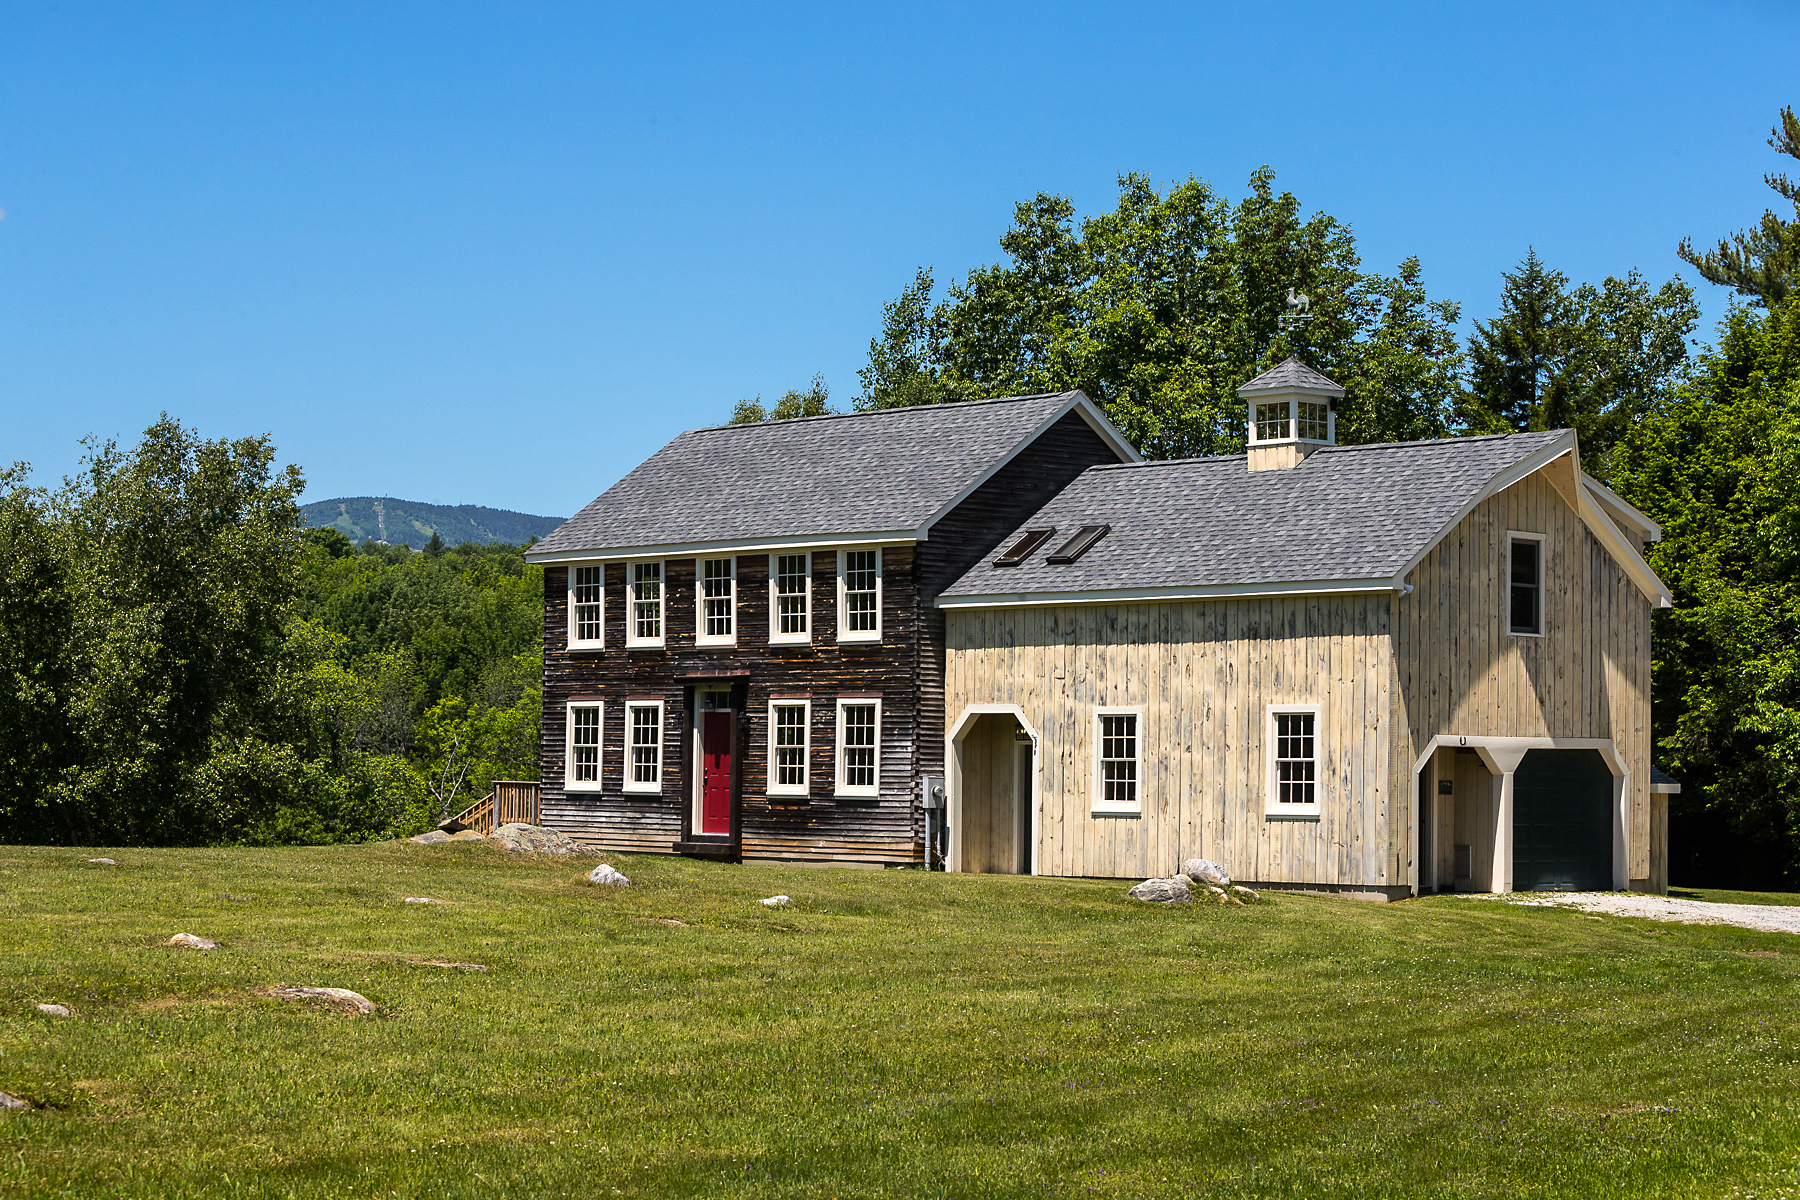 Single Family Home for Sale at Perfect Country Location 71 Flatow Rd Ludlow, Vermont 05149 United States